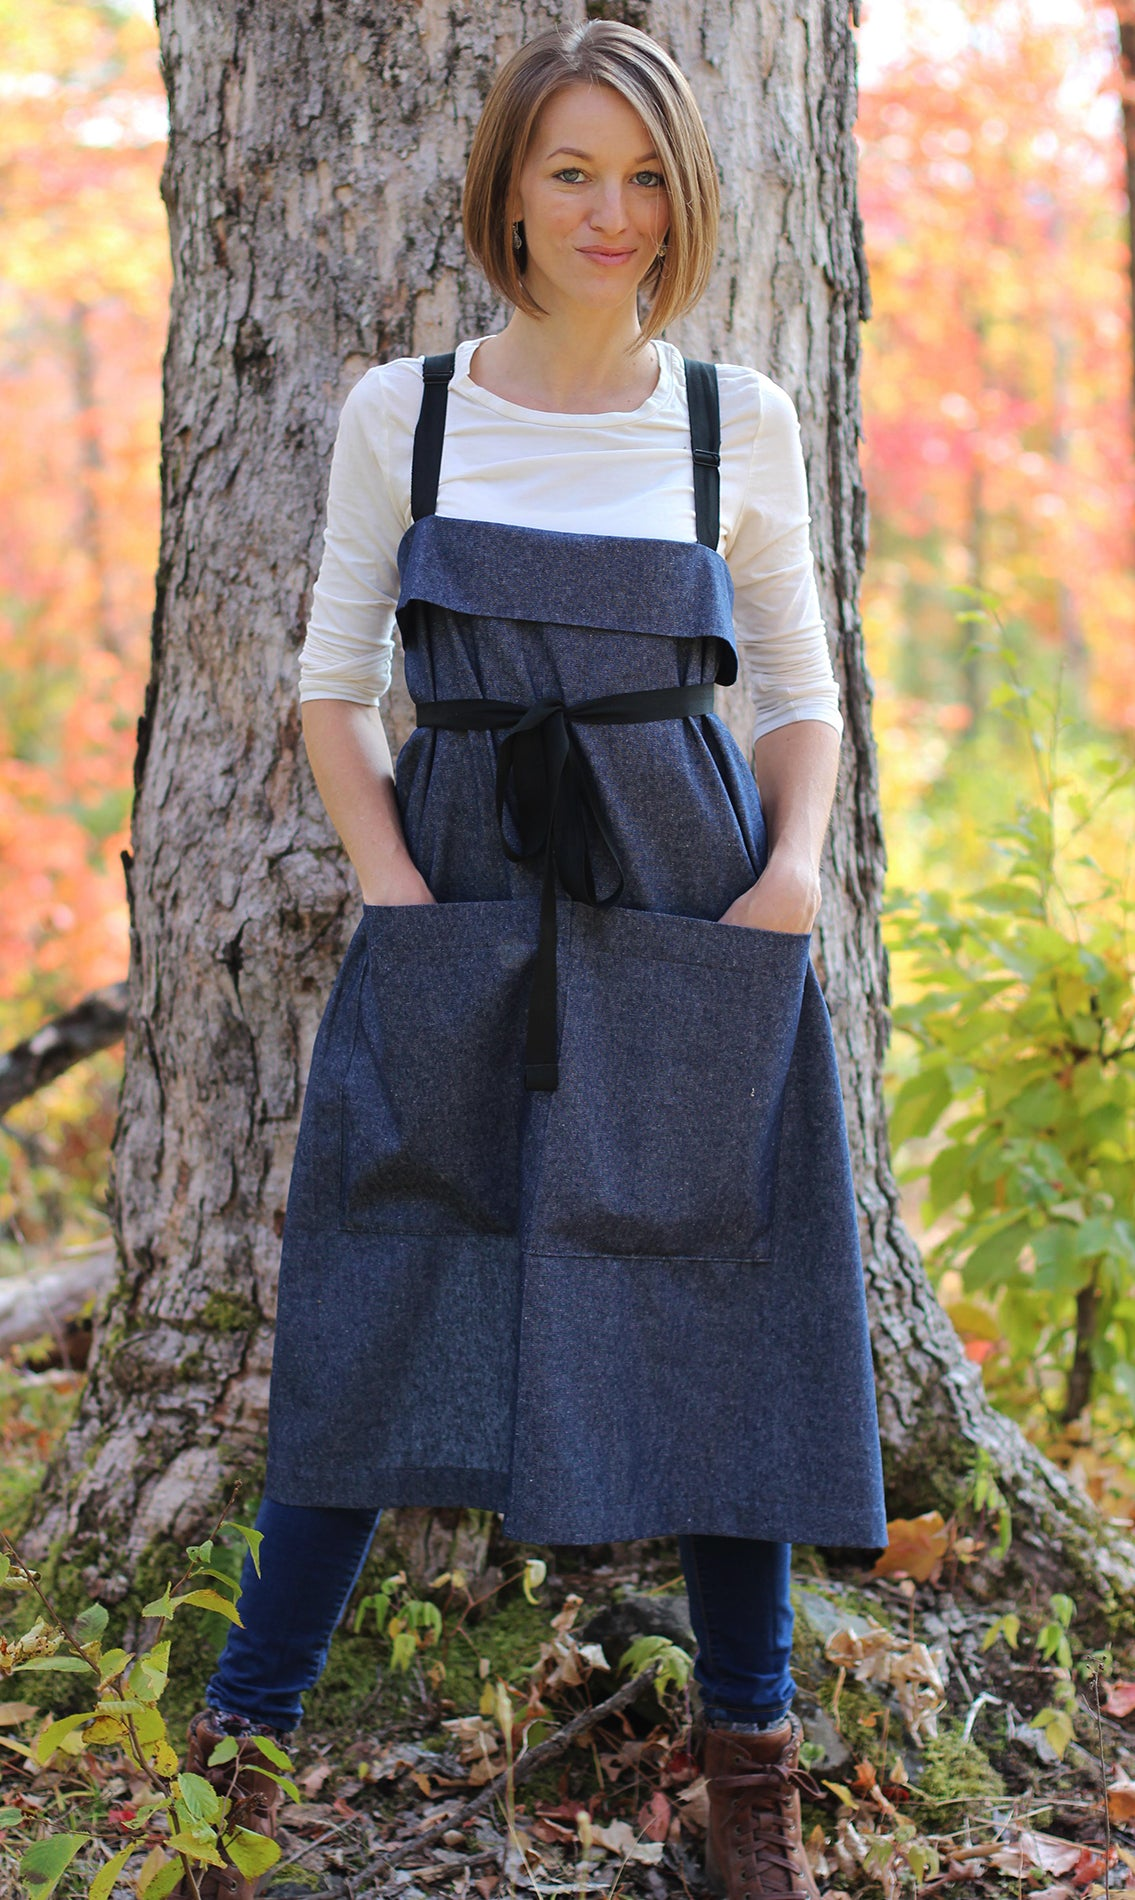 The Wrap Apron in Denim - Front View